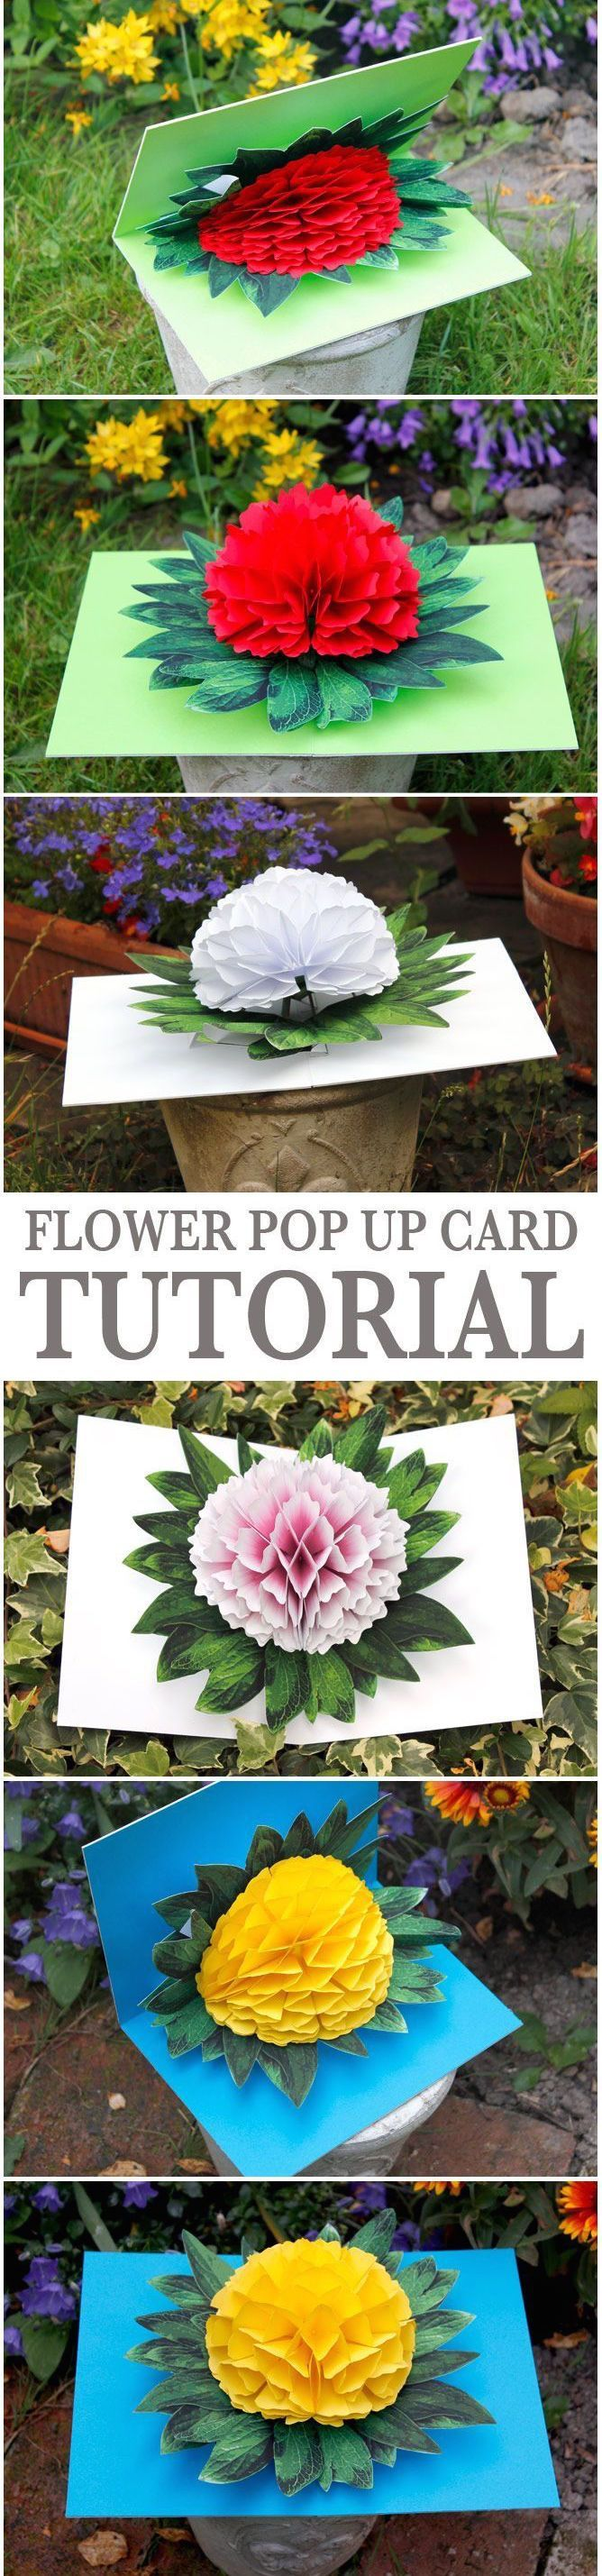 Flower pop up card Mother's Day tutorial - so sweet and colorful.